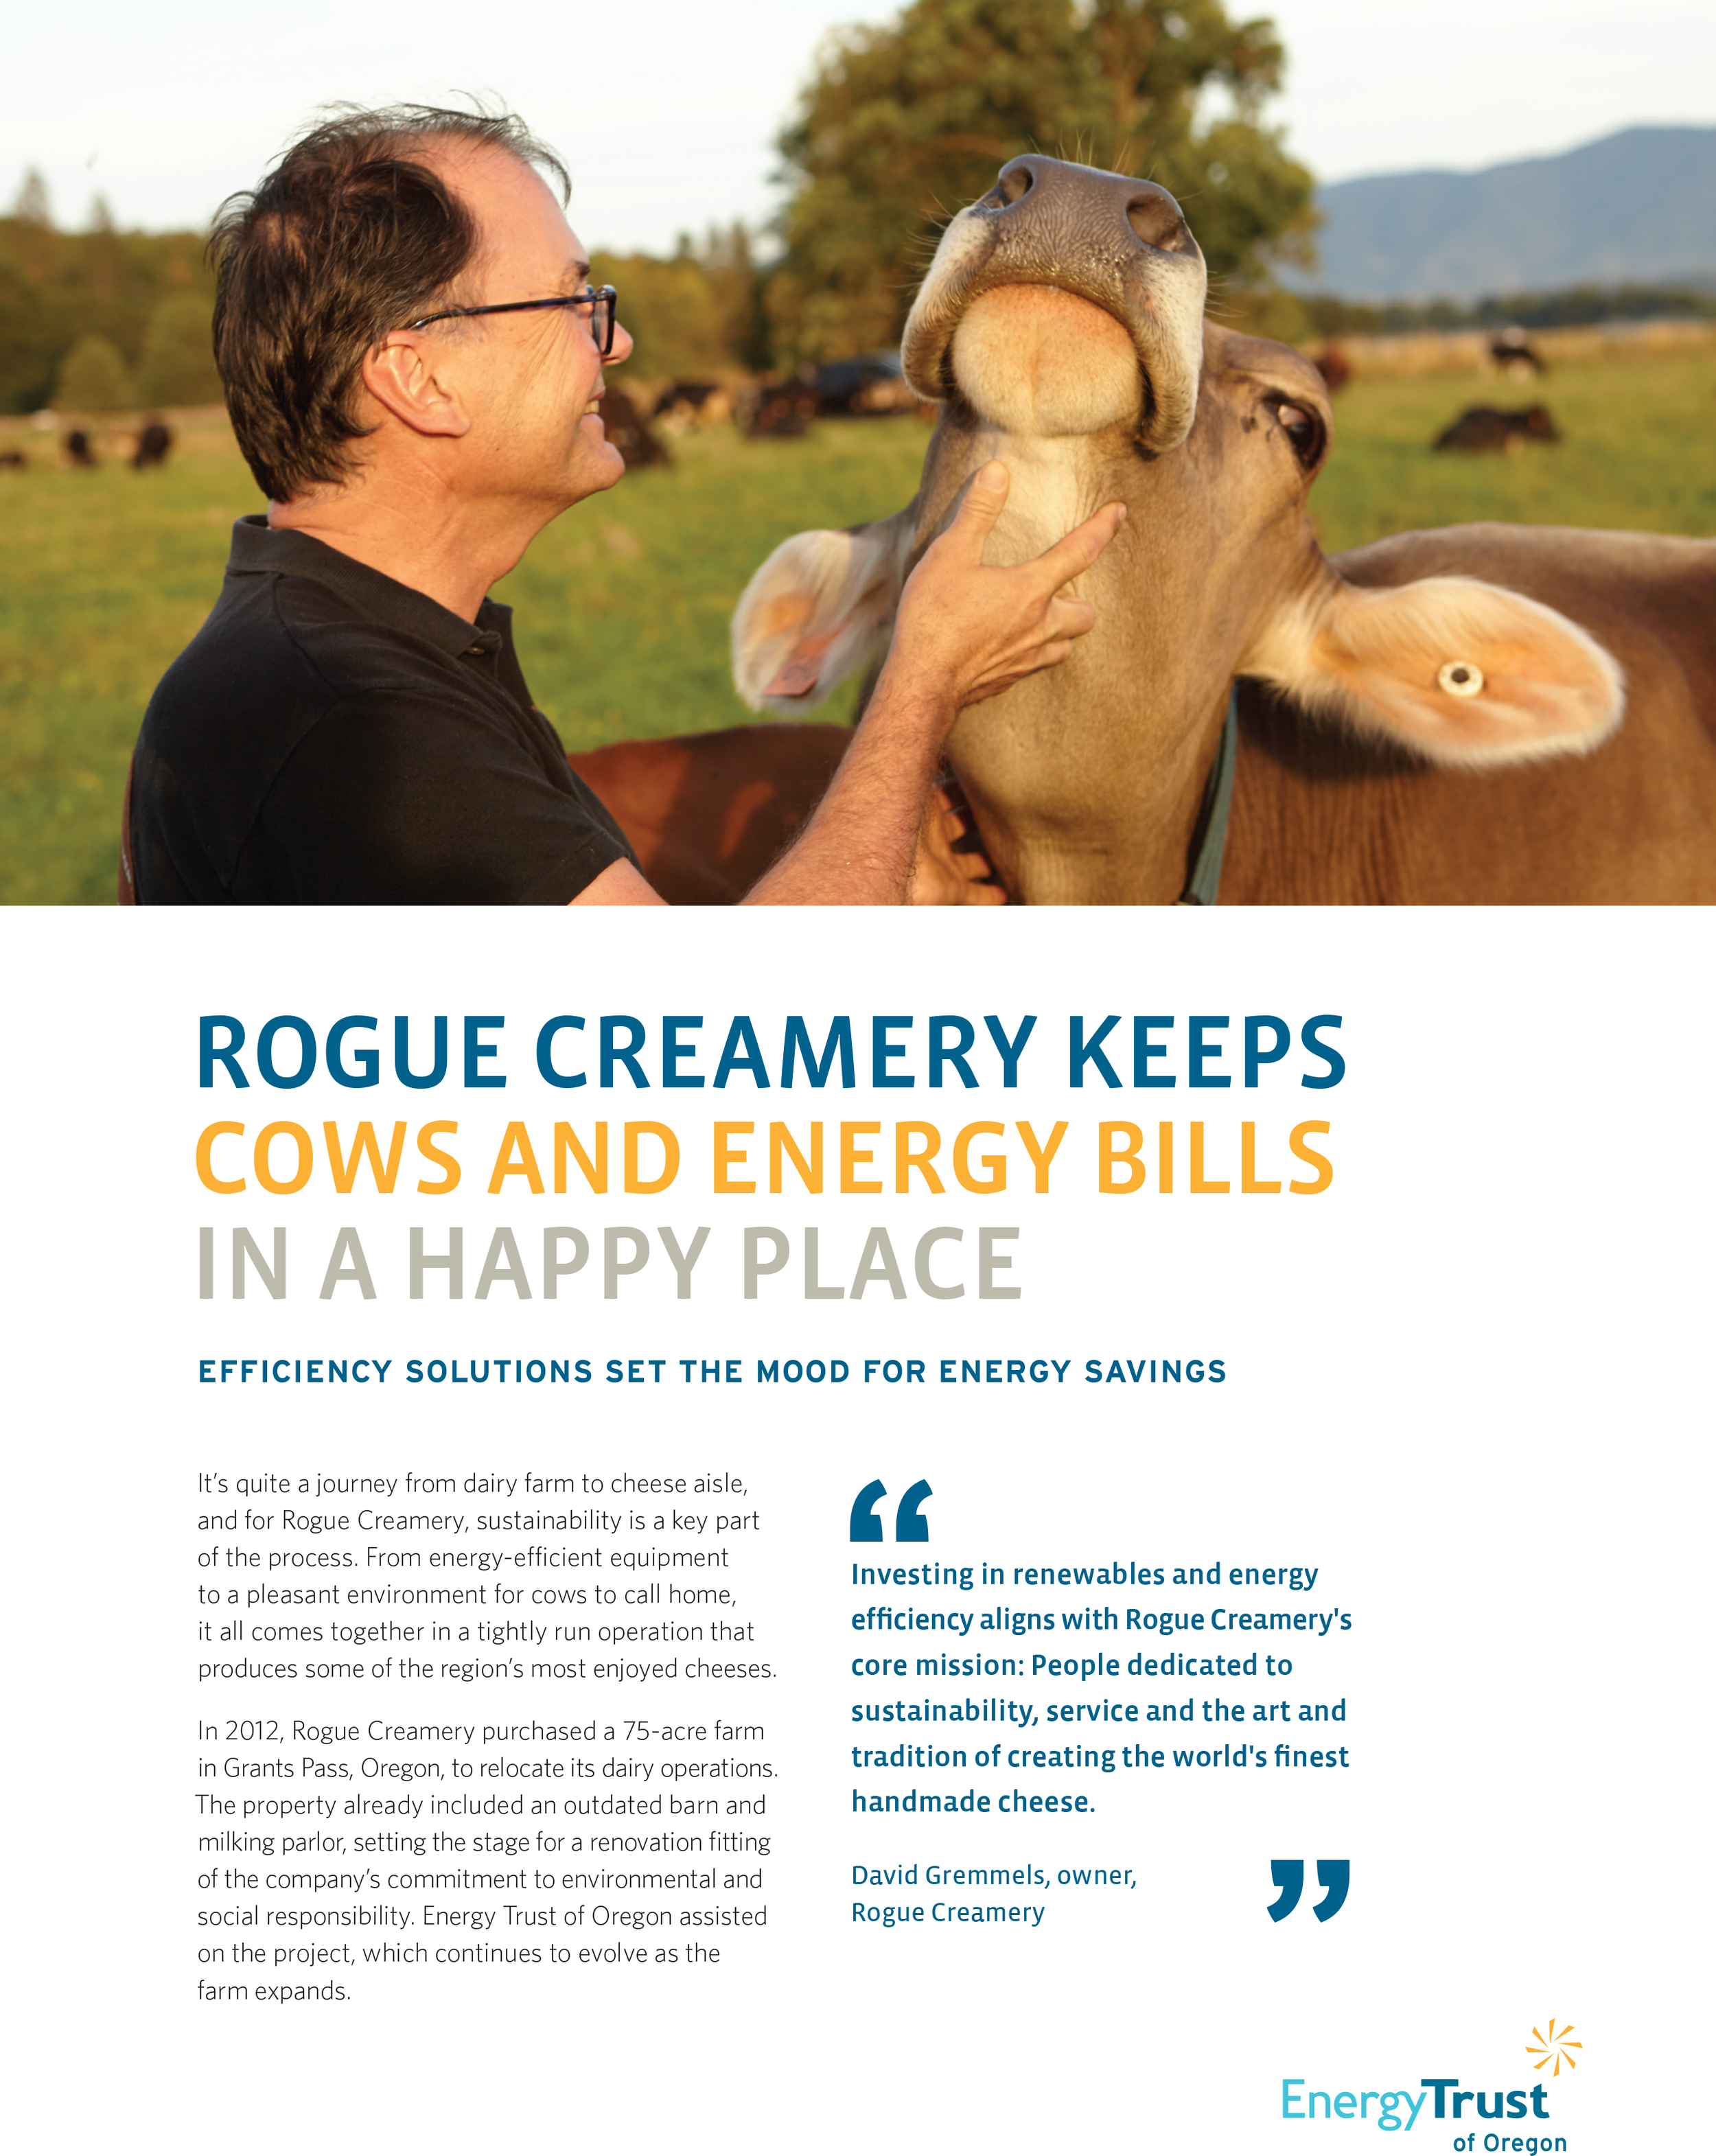 Rogue-Creamery-1.png